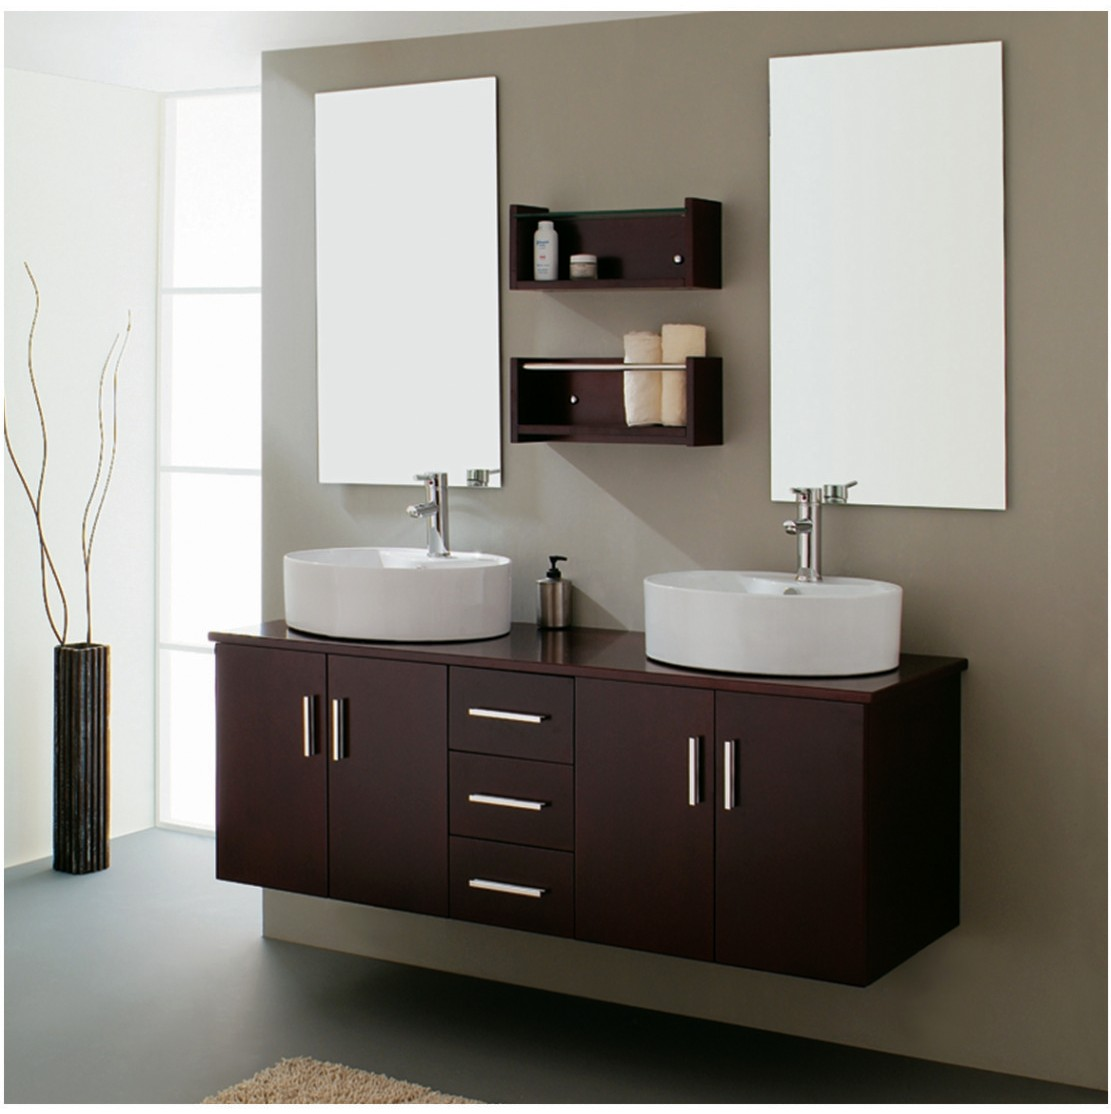 Double sink bathroom decorating ideas 2017 2018 best for Bathroom furniture ideas